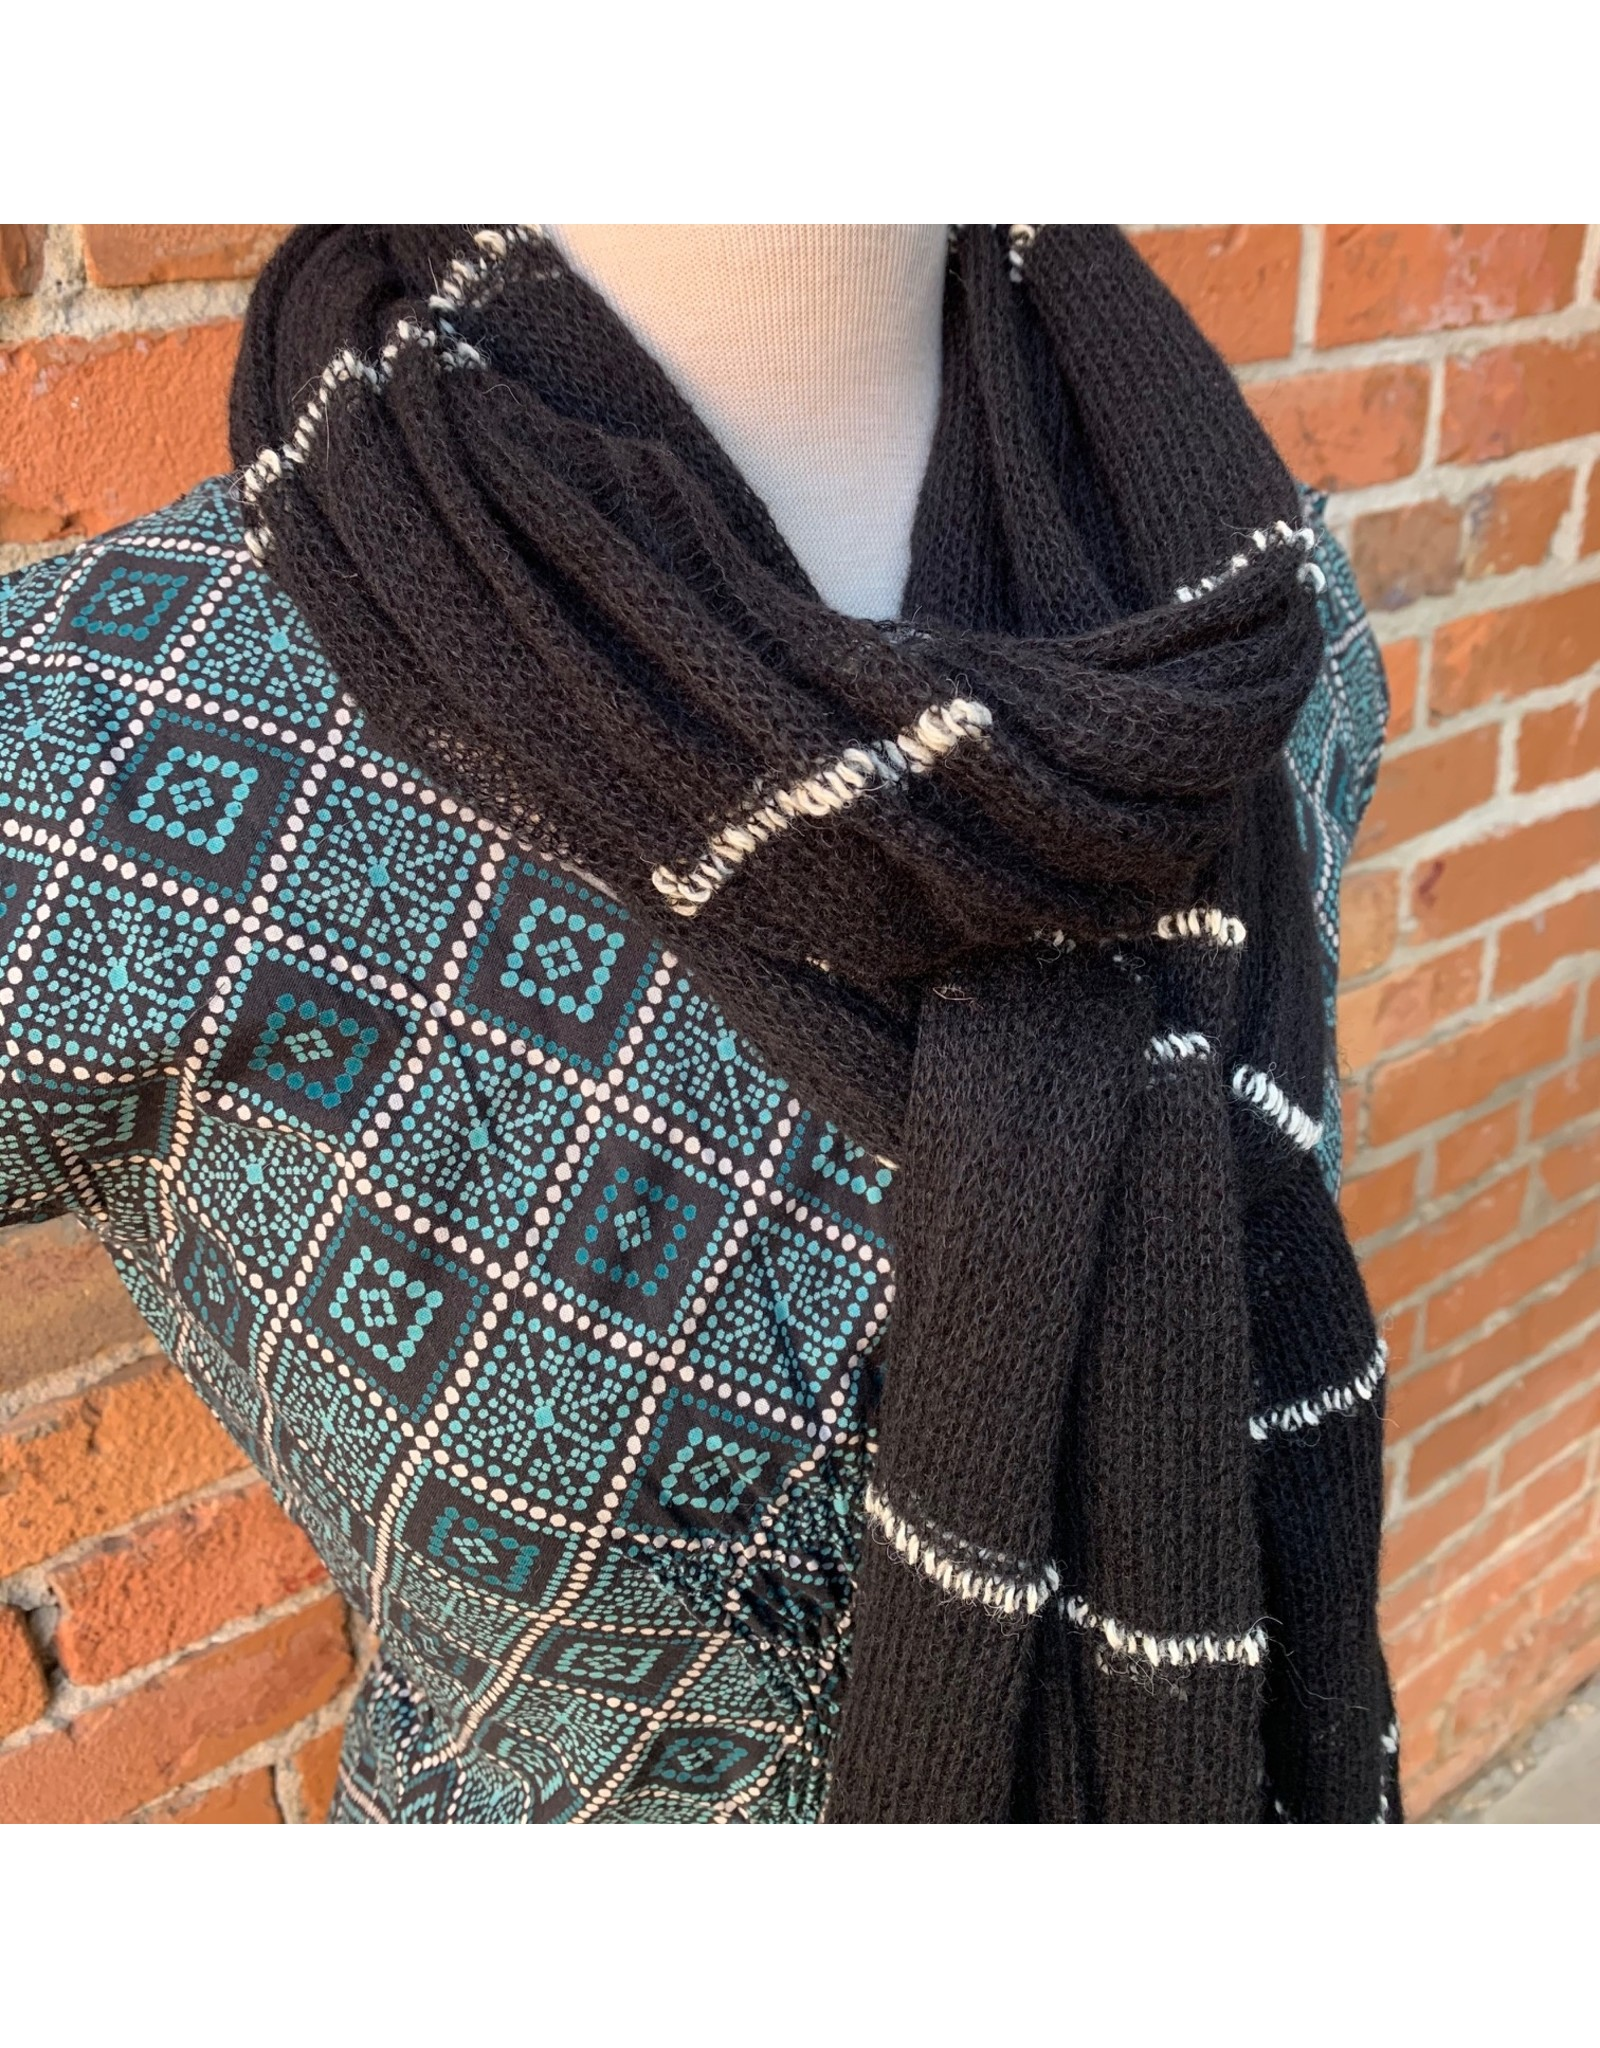 Ten Thousand Villages White Striped Black Scarf